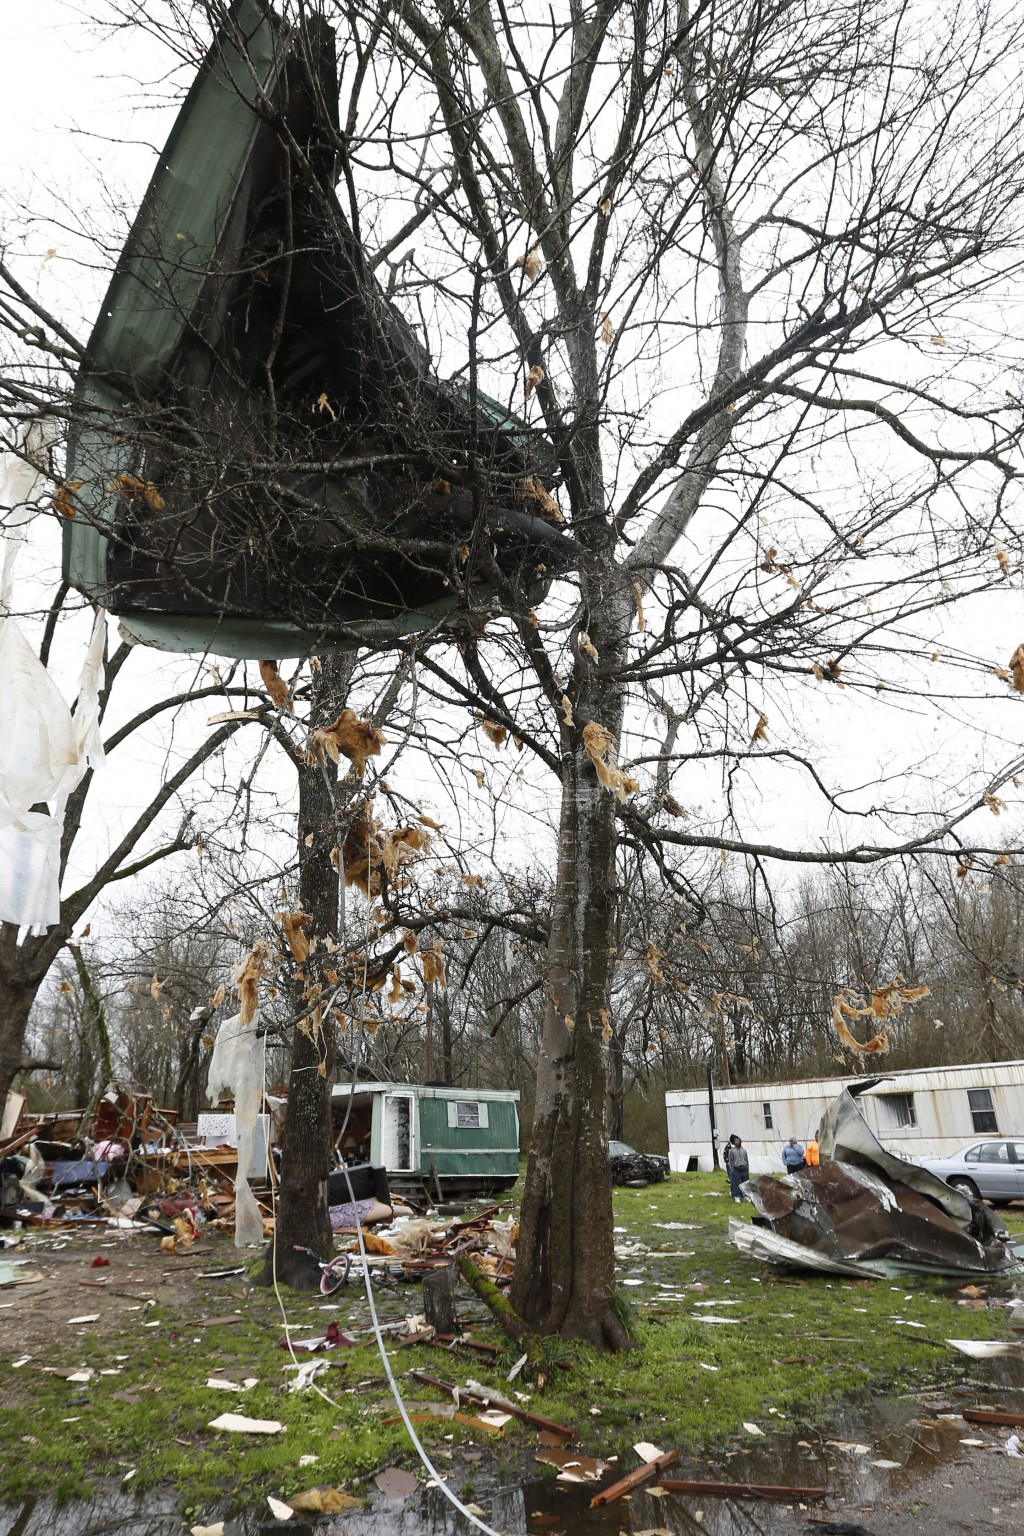 Sheeting from a mobile home hangs in a tree in Pickens, Miss., Thursday, Feb. 6, 2020, after strong winds stripped it from the house Wednesday afterno...